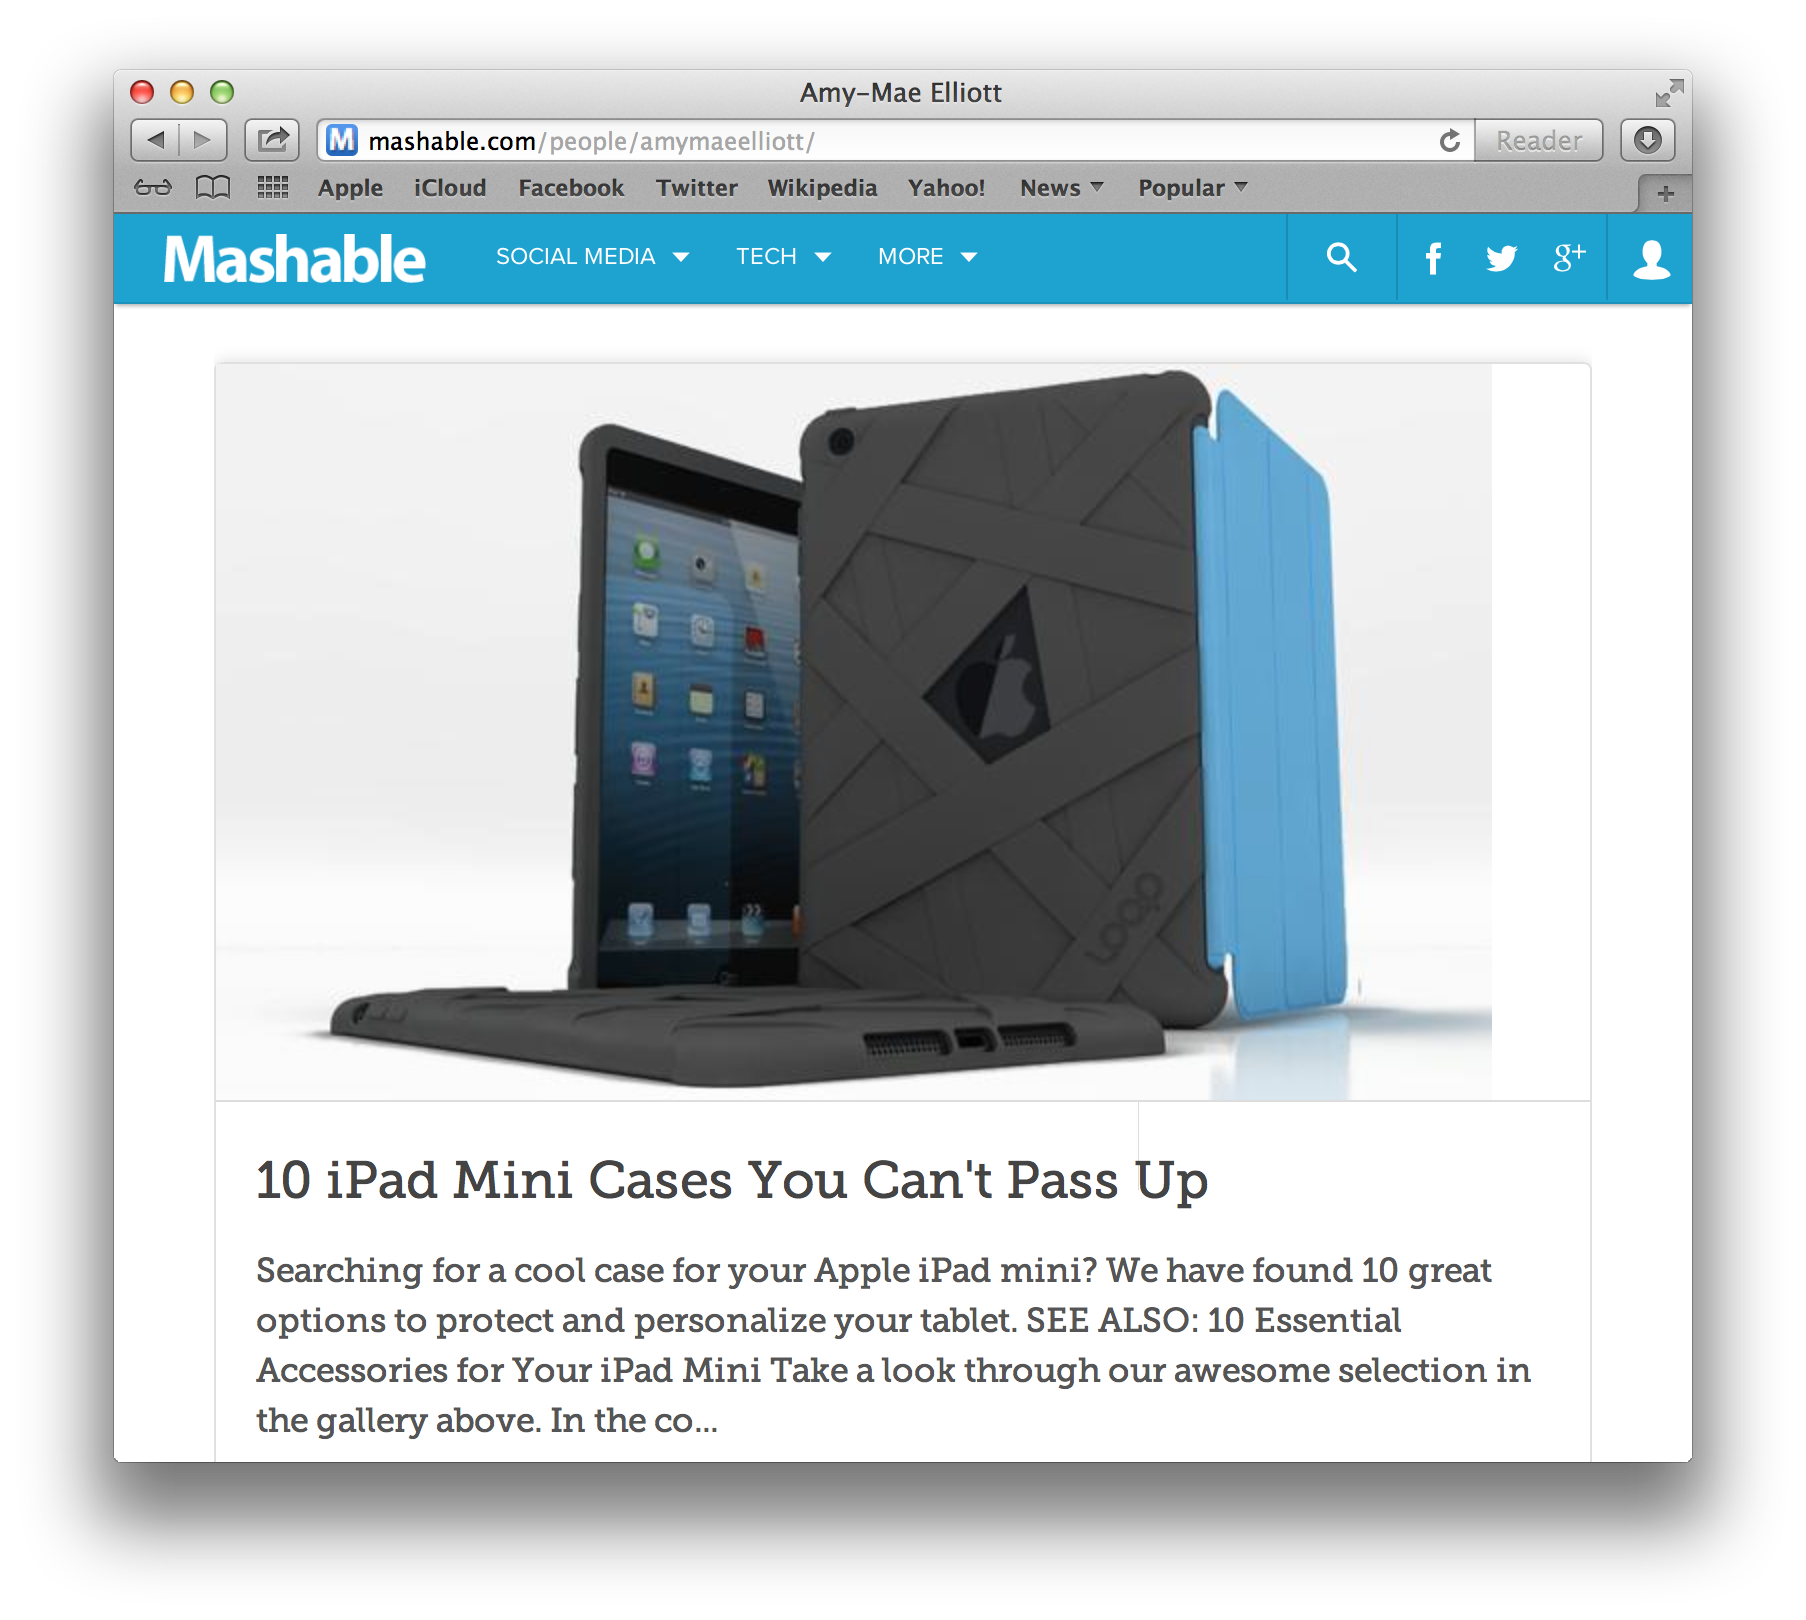 Loop Attachment iPad Mini Mummy case on Mashable